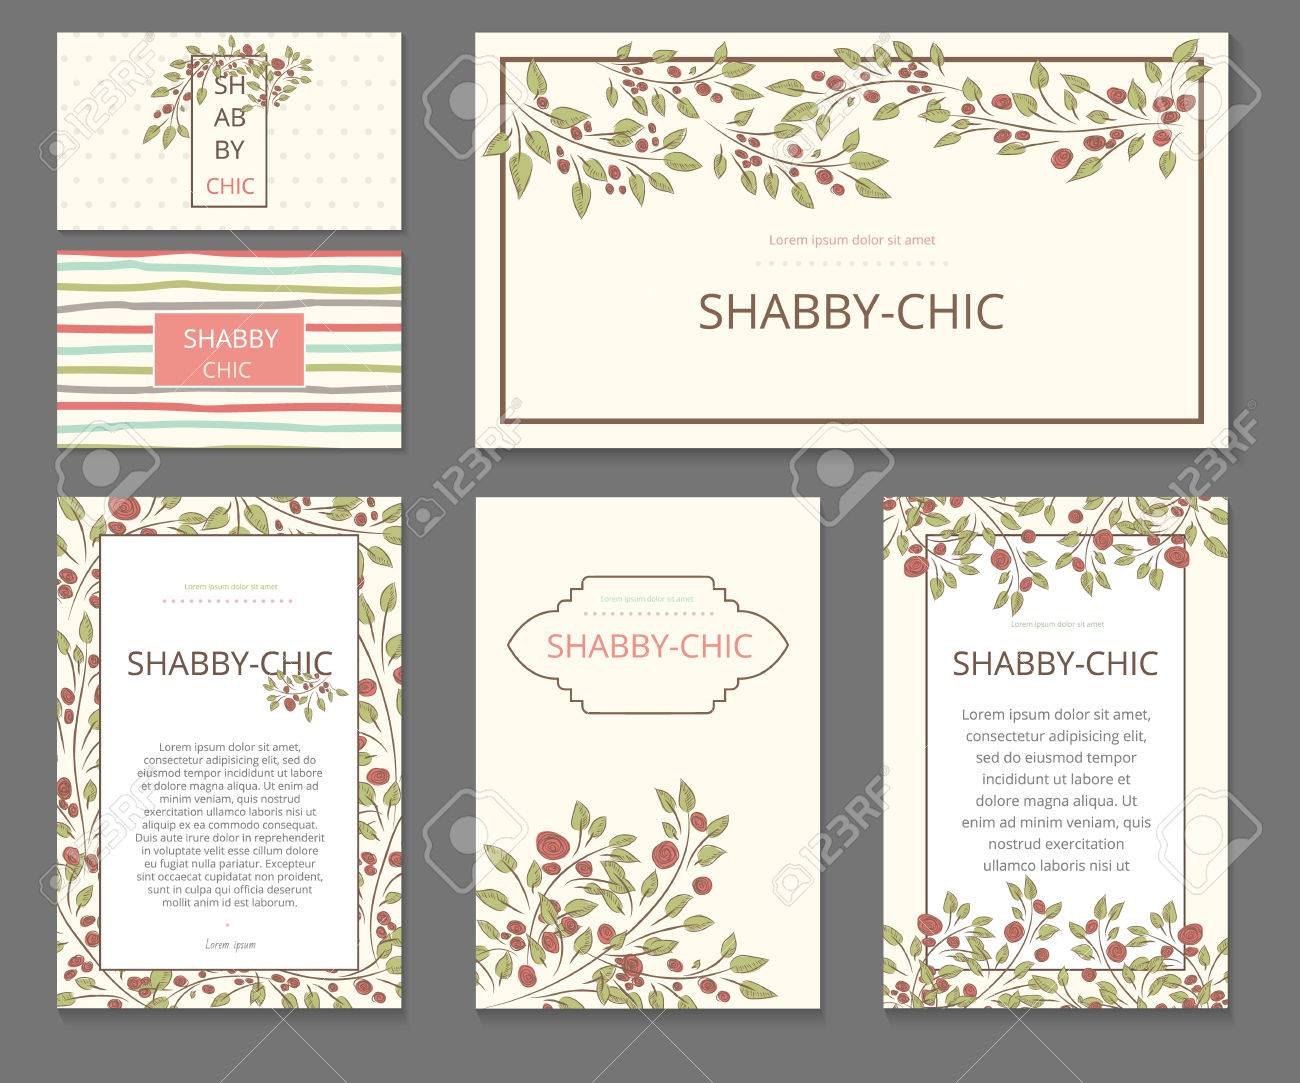 Event Painted Floral Background Design Stationery Set In Vector Format Wedding Invitations